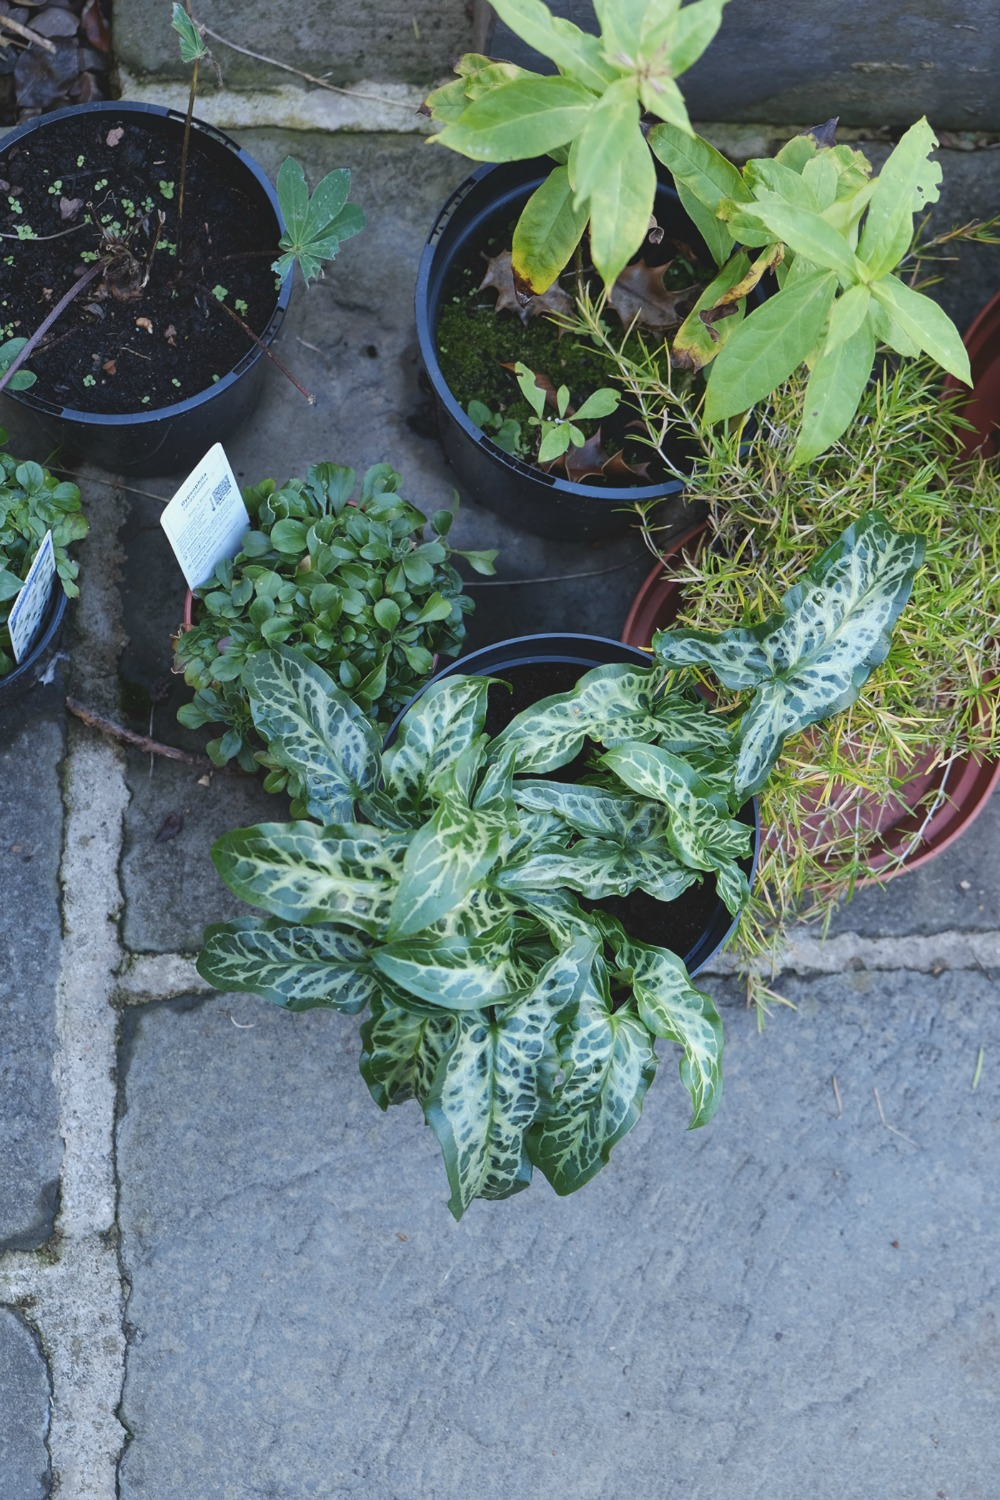 Aerial shot of potted plants